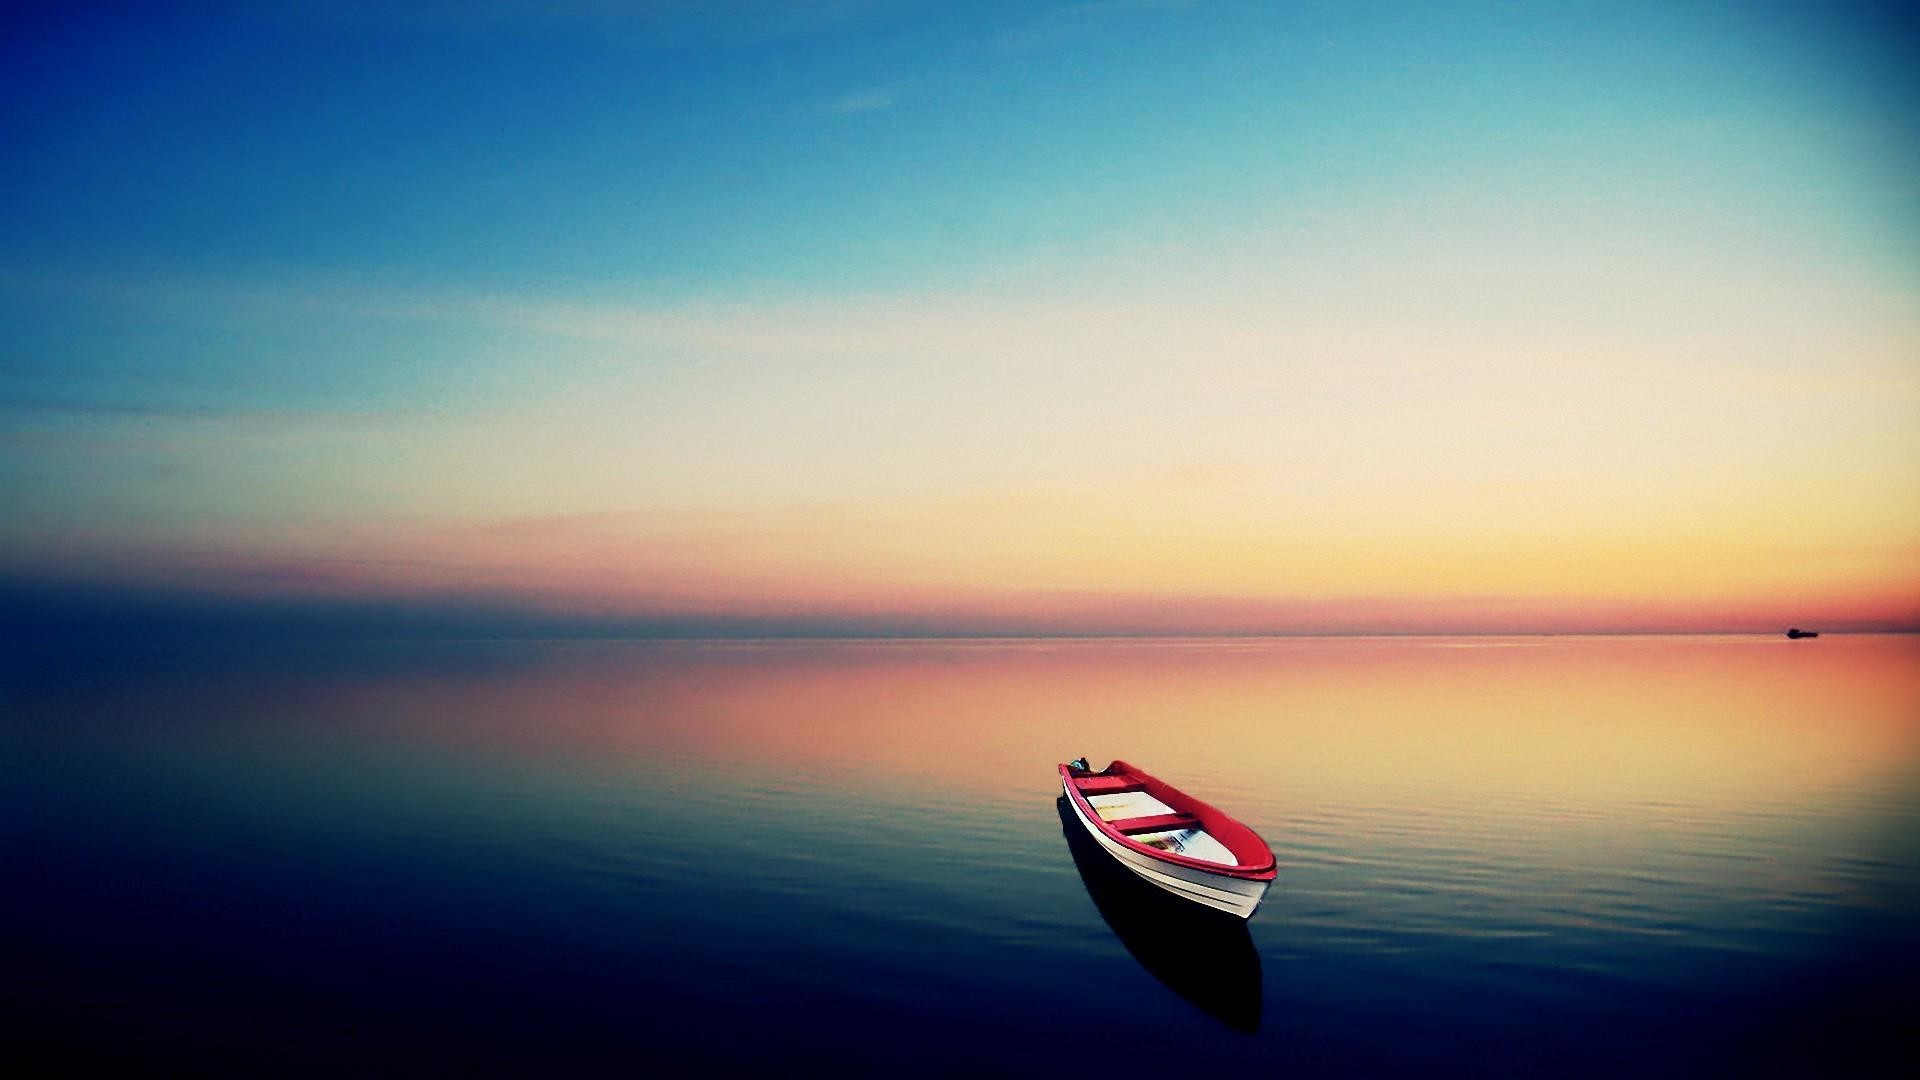 1920x1080 Boat-sky-hd-wallpapers-desgins-desktop